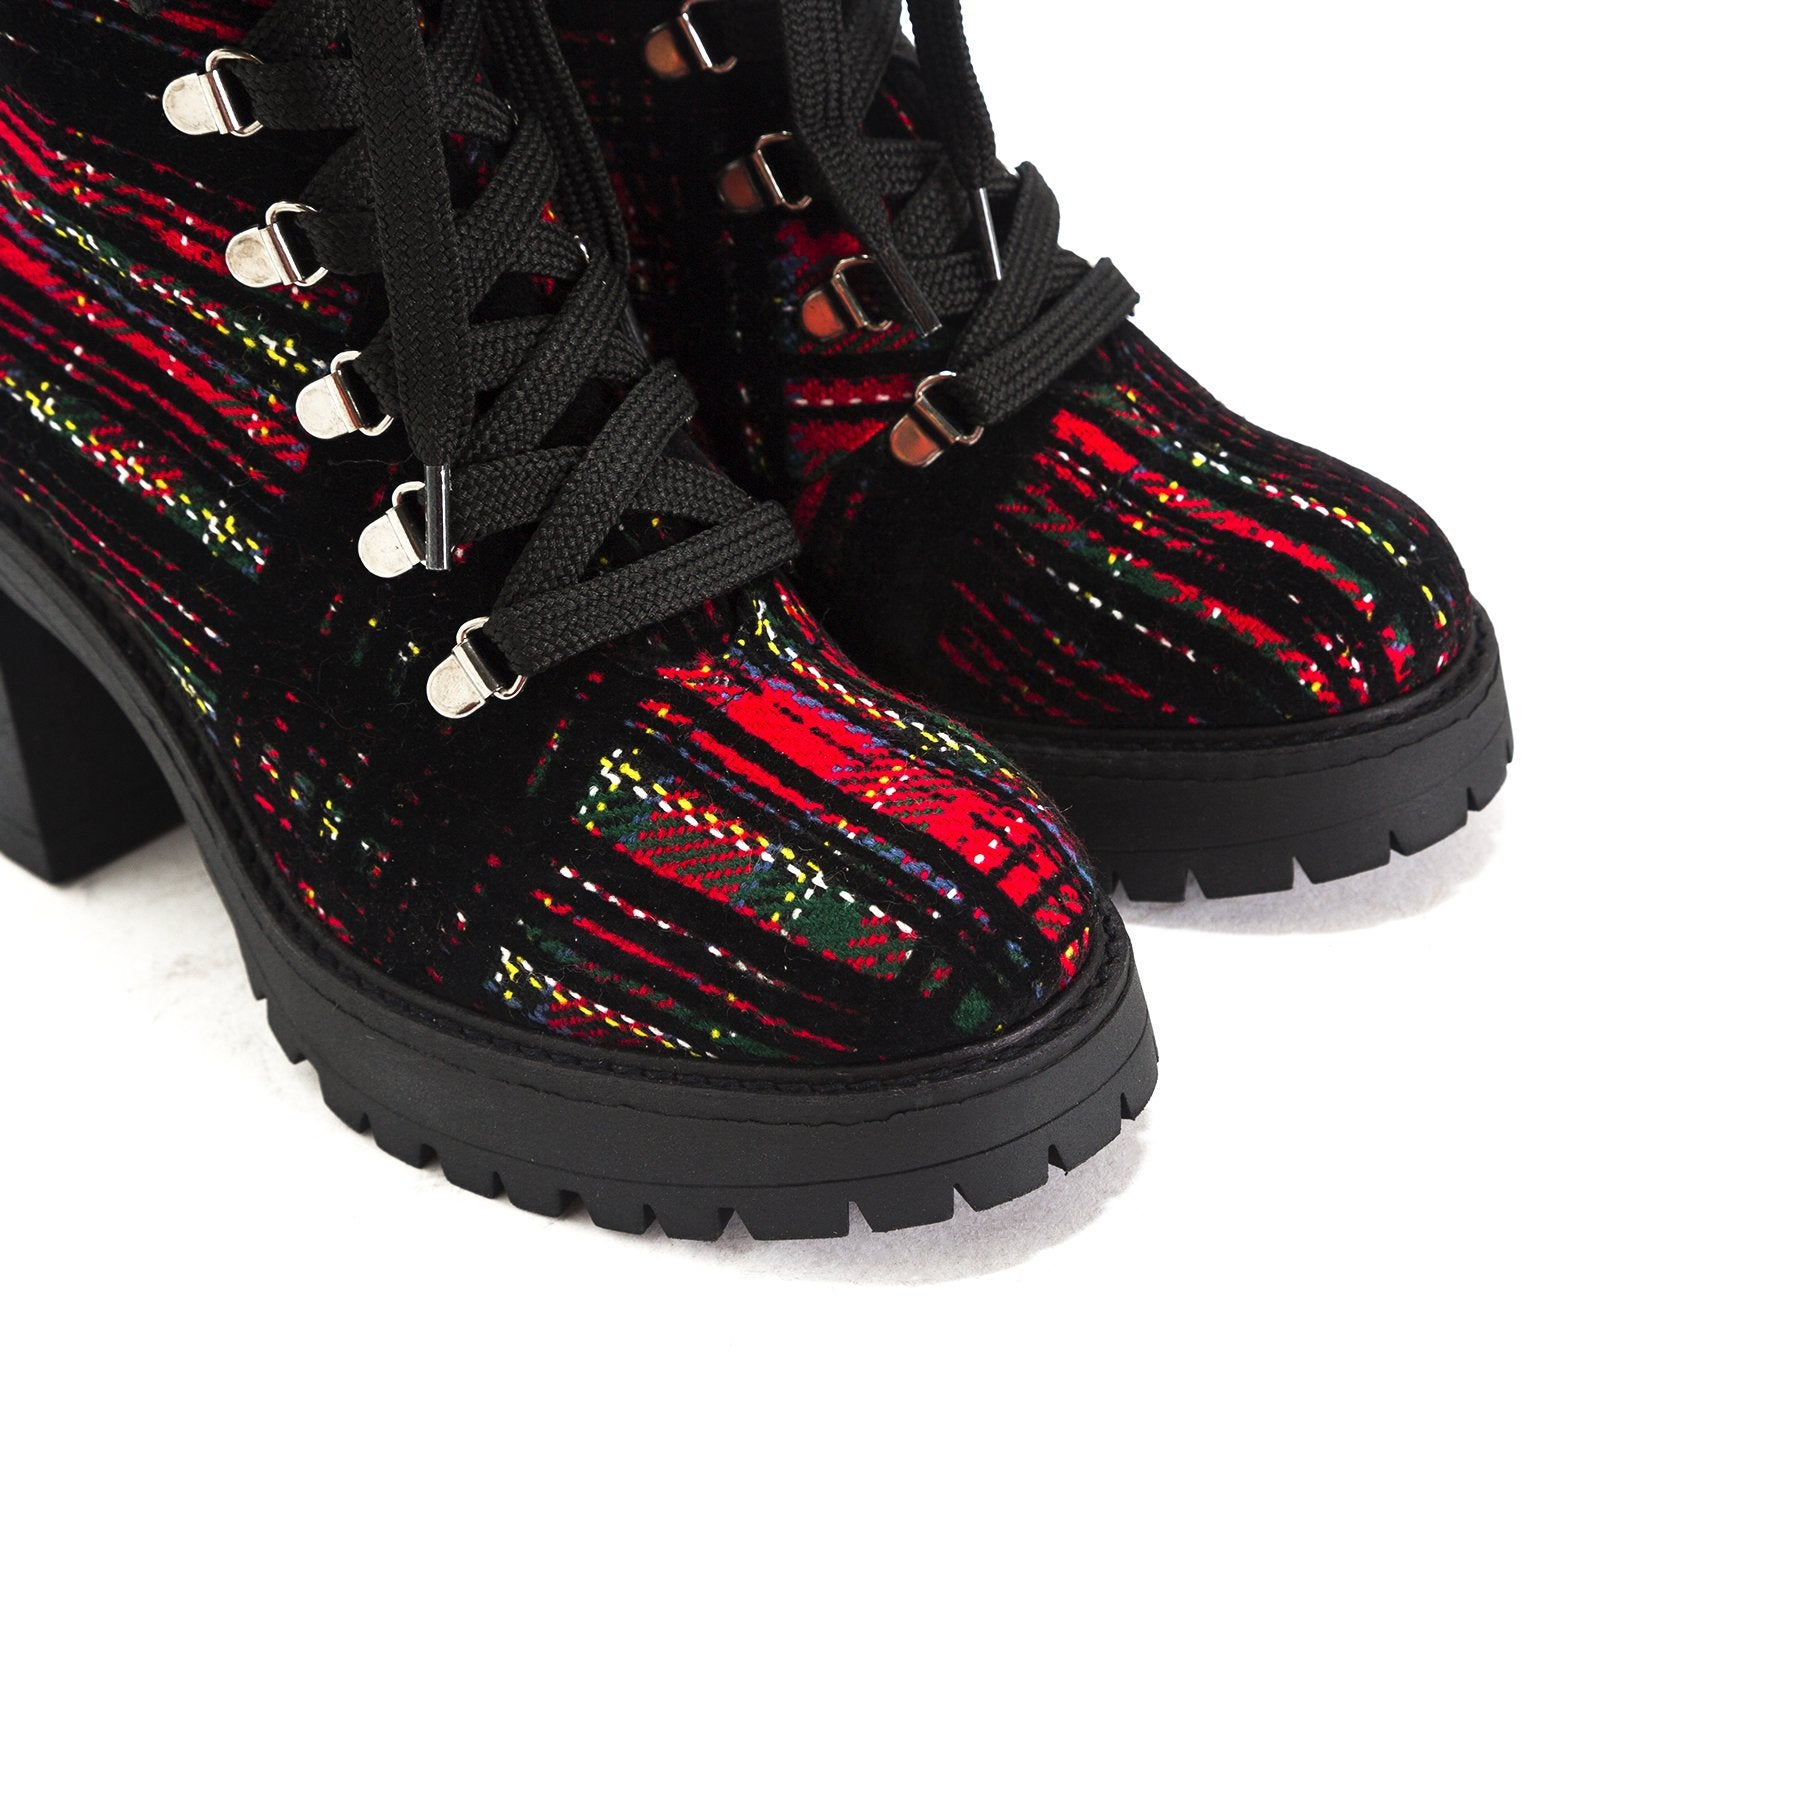 Sickla Red Tartan Platforms